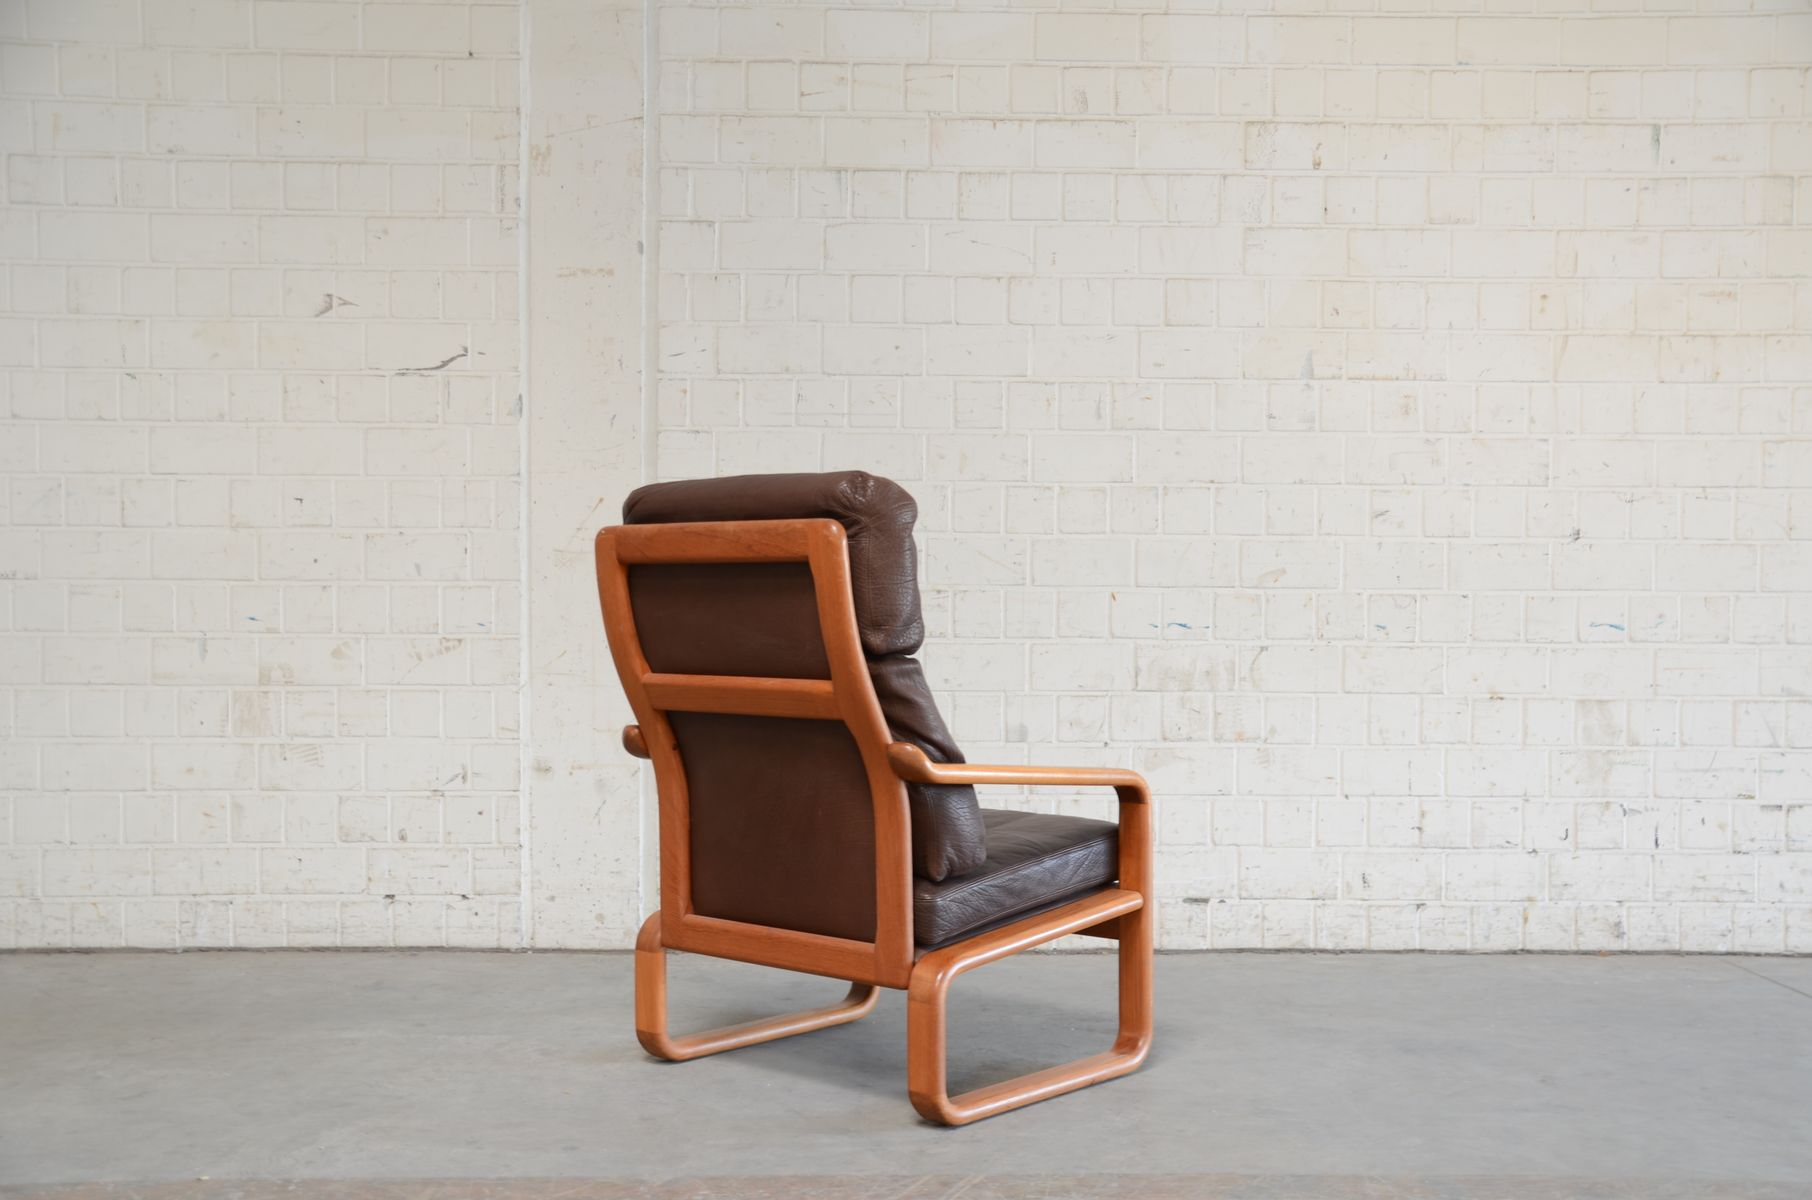 Vintage Teak Leather Lounge Chair From Holstebro For